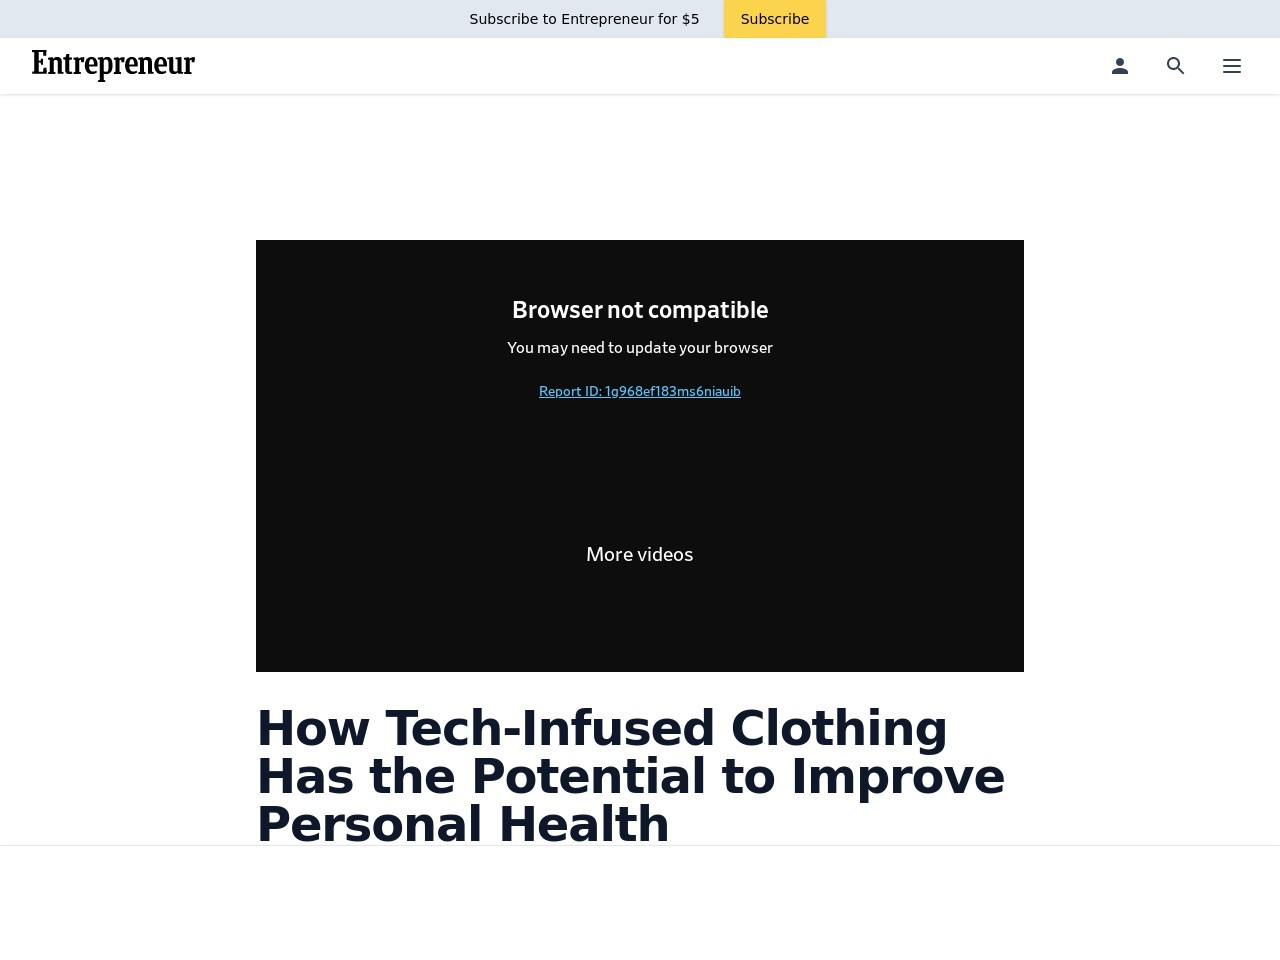 How Tech-Infused Clothing Has the Potential to Improve Personal Health